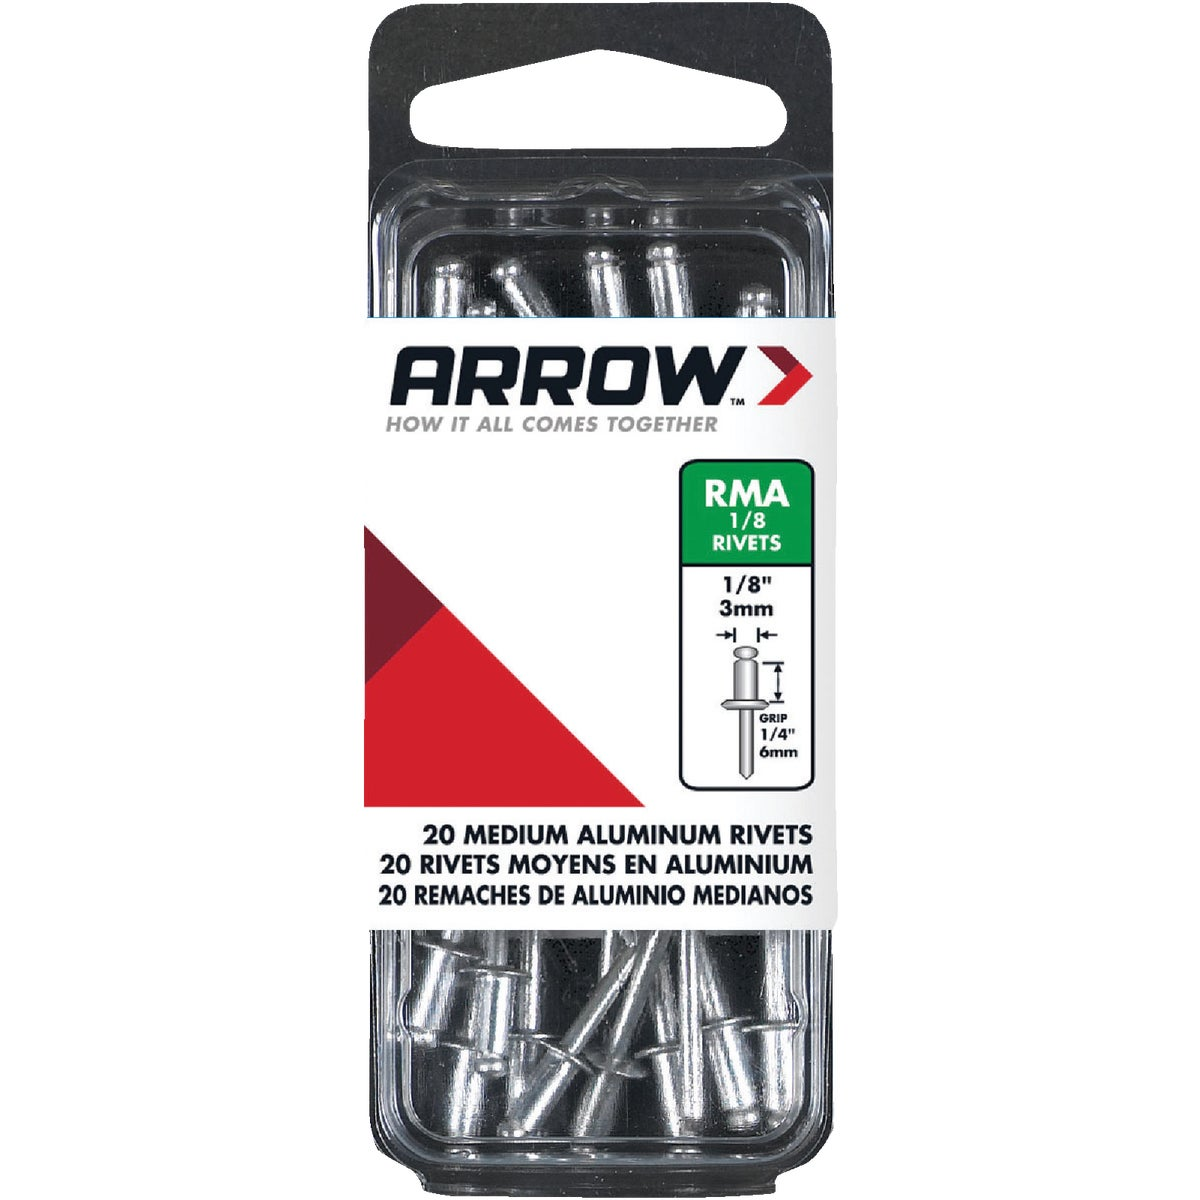 1/8X1/4 ALUM RIVET - RMA1/8 by Arrow Fastener Co